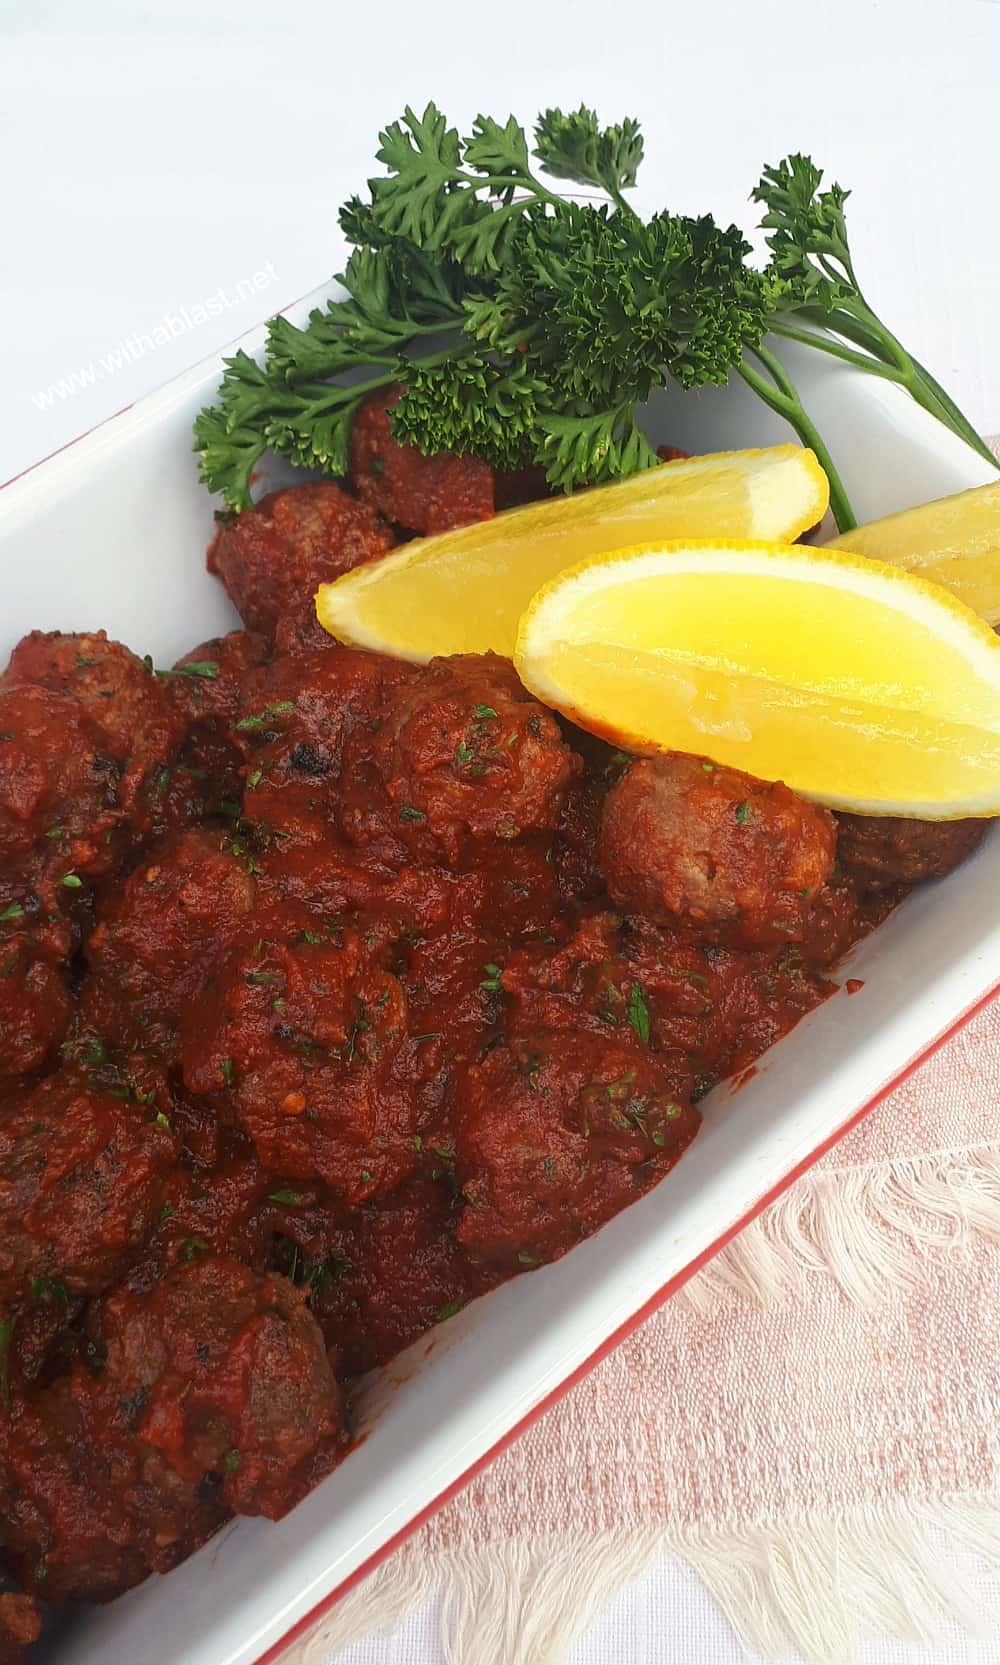 These Turkish Meatballs are made with ground beef and lamb (or choose only one), hugged in an easy to make tomato based sauce